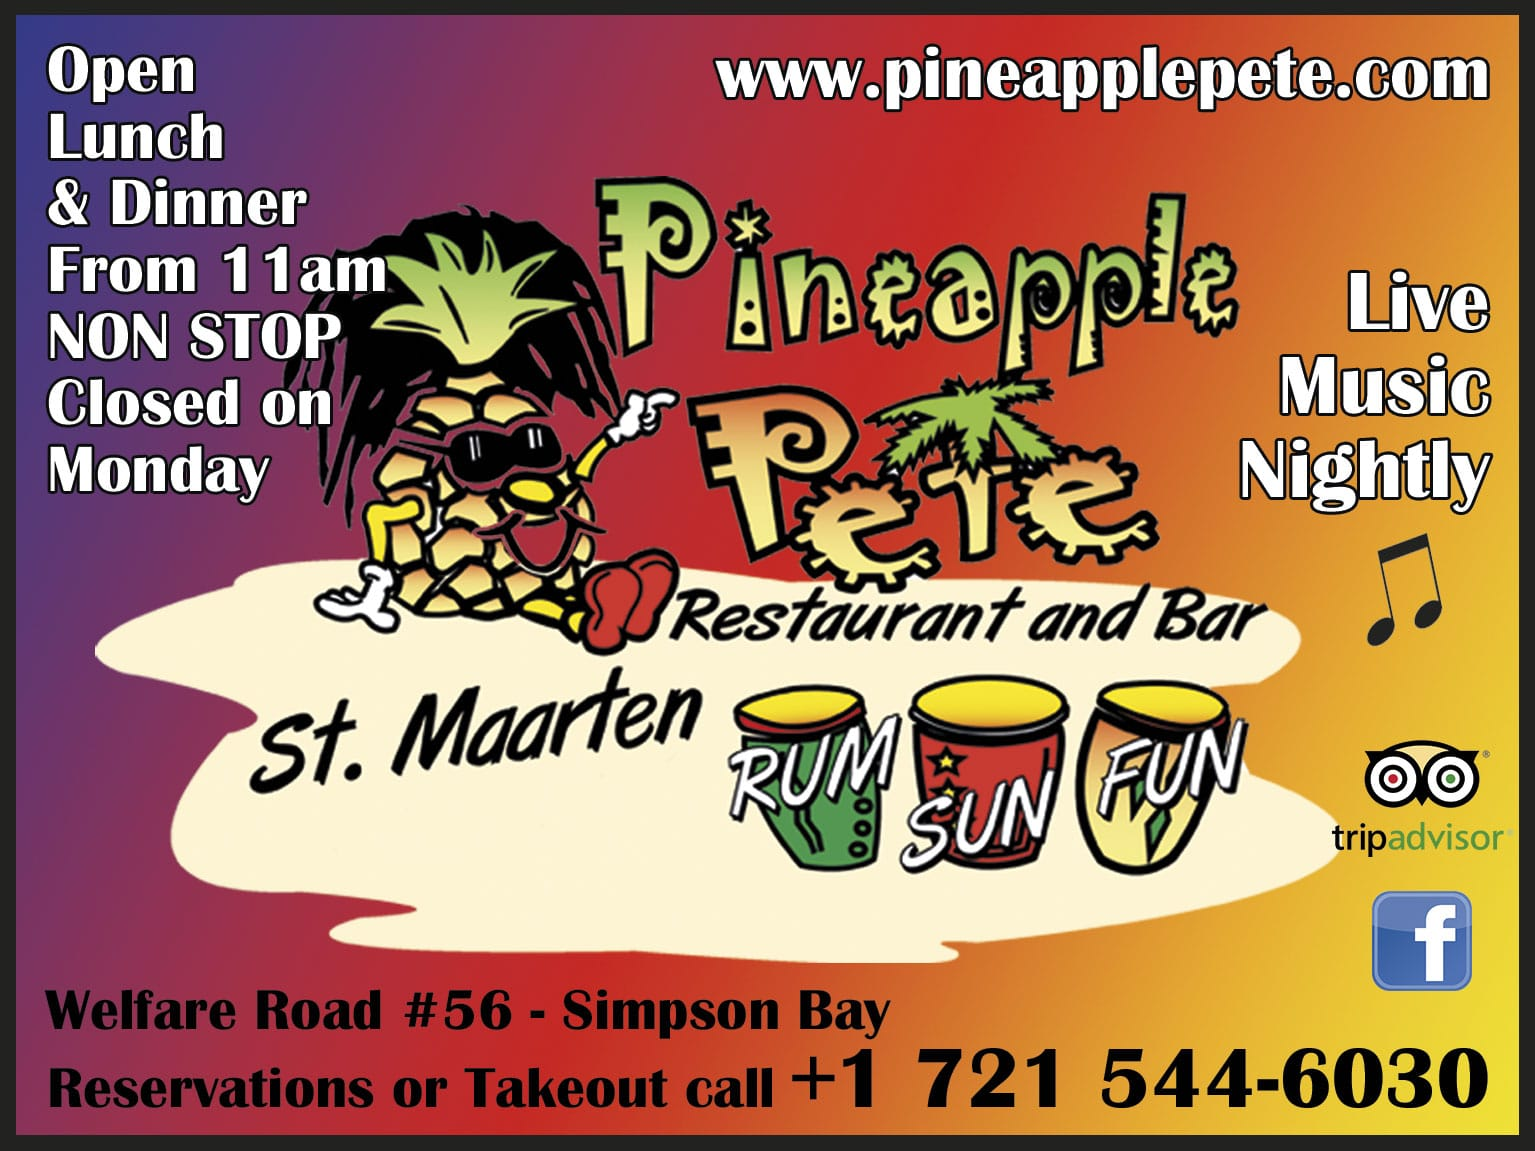 SXM MAP - Saintmartinsintmaarten - Pineapple Pete Restaurant